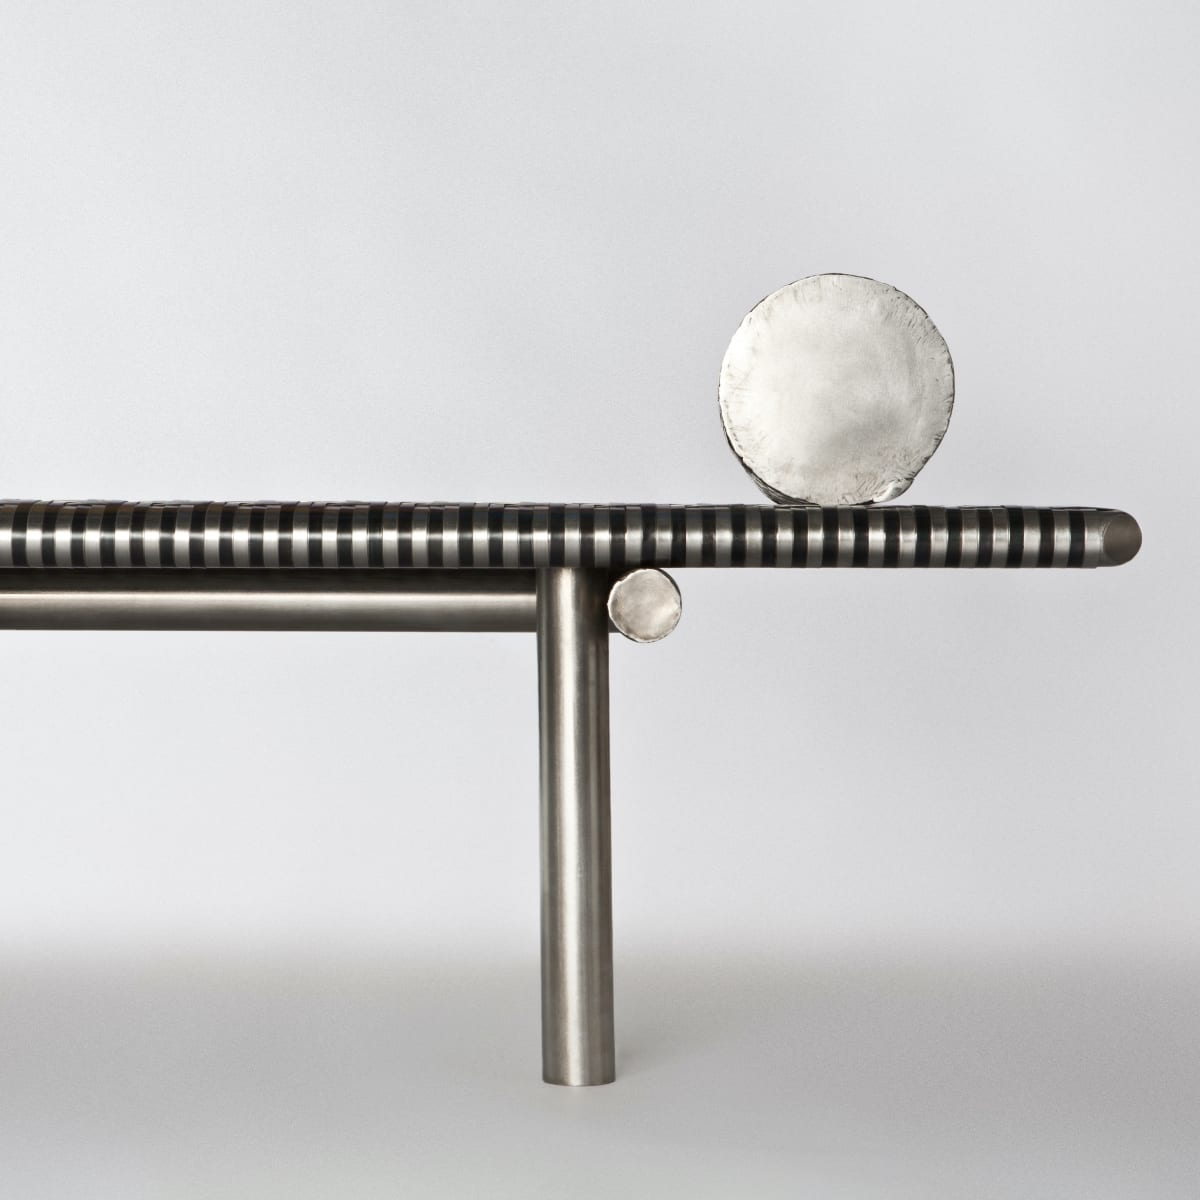 Michael Gittings Aztec Daybed, 2018 Brushed and Patinaed Stainless Steel 80 x 195 x 40 cm